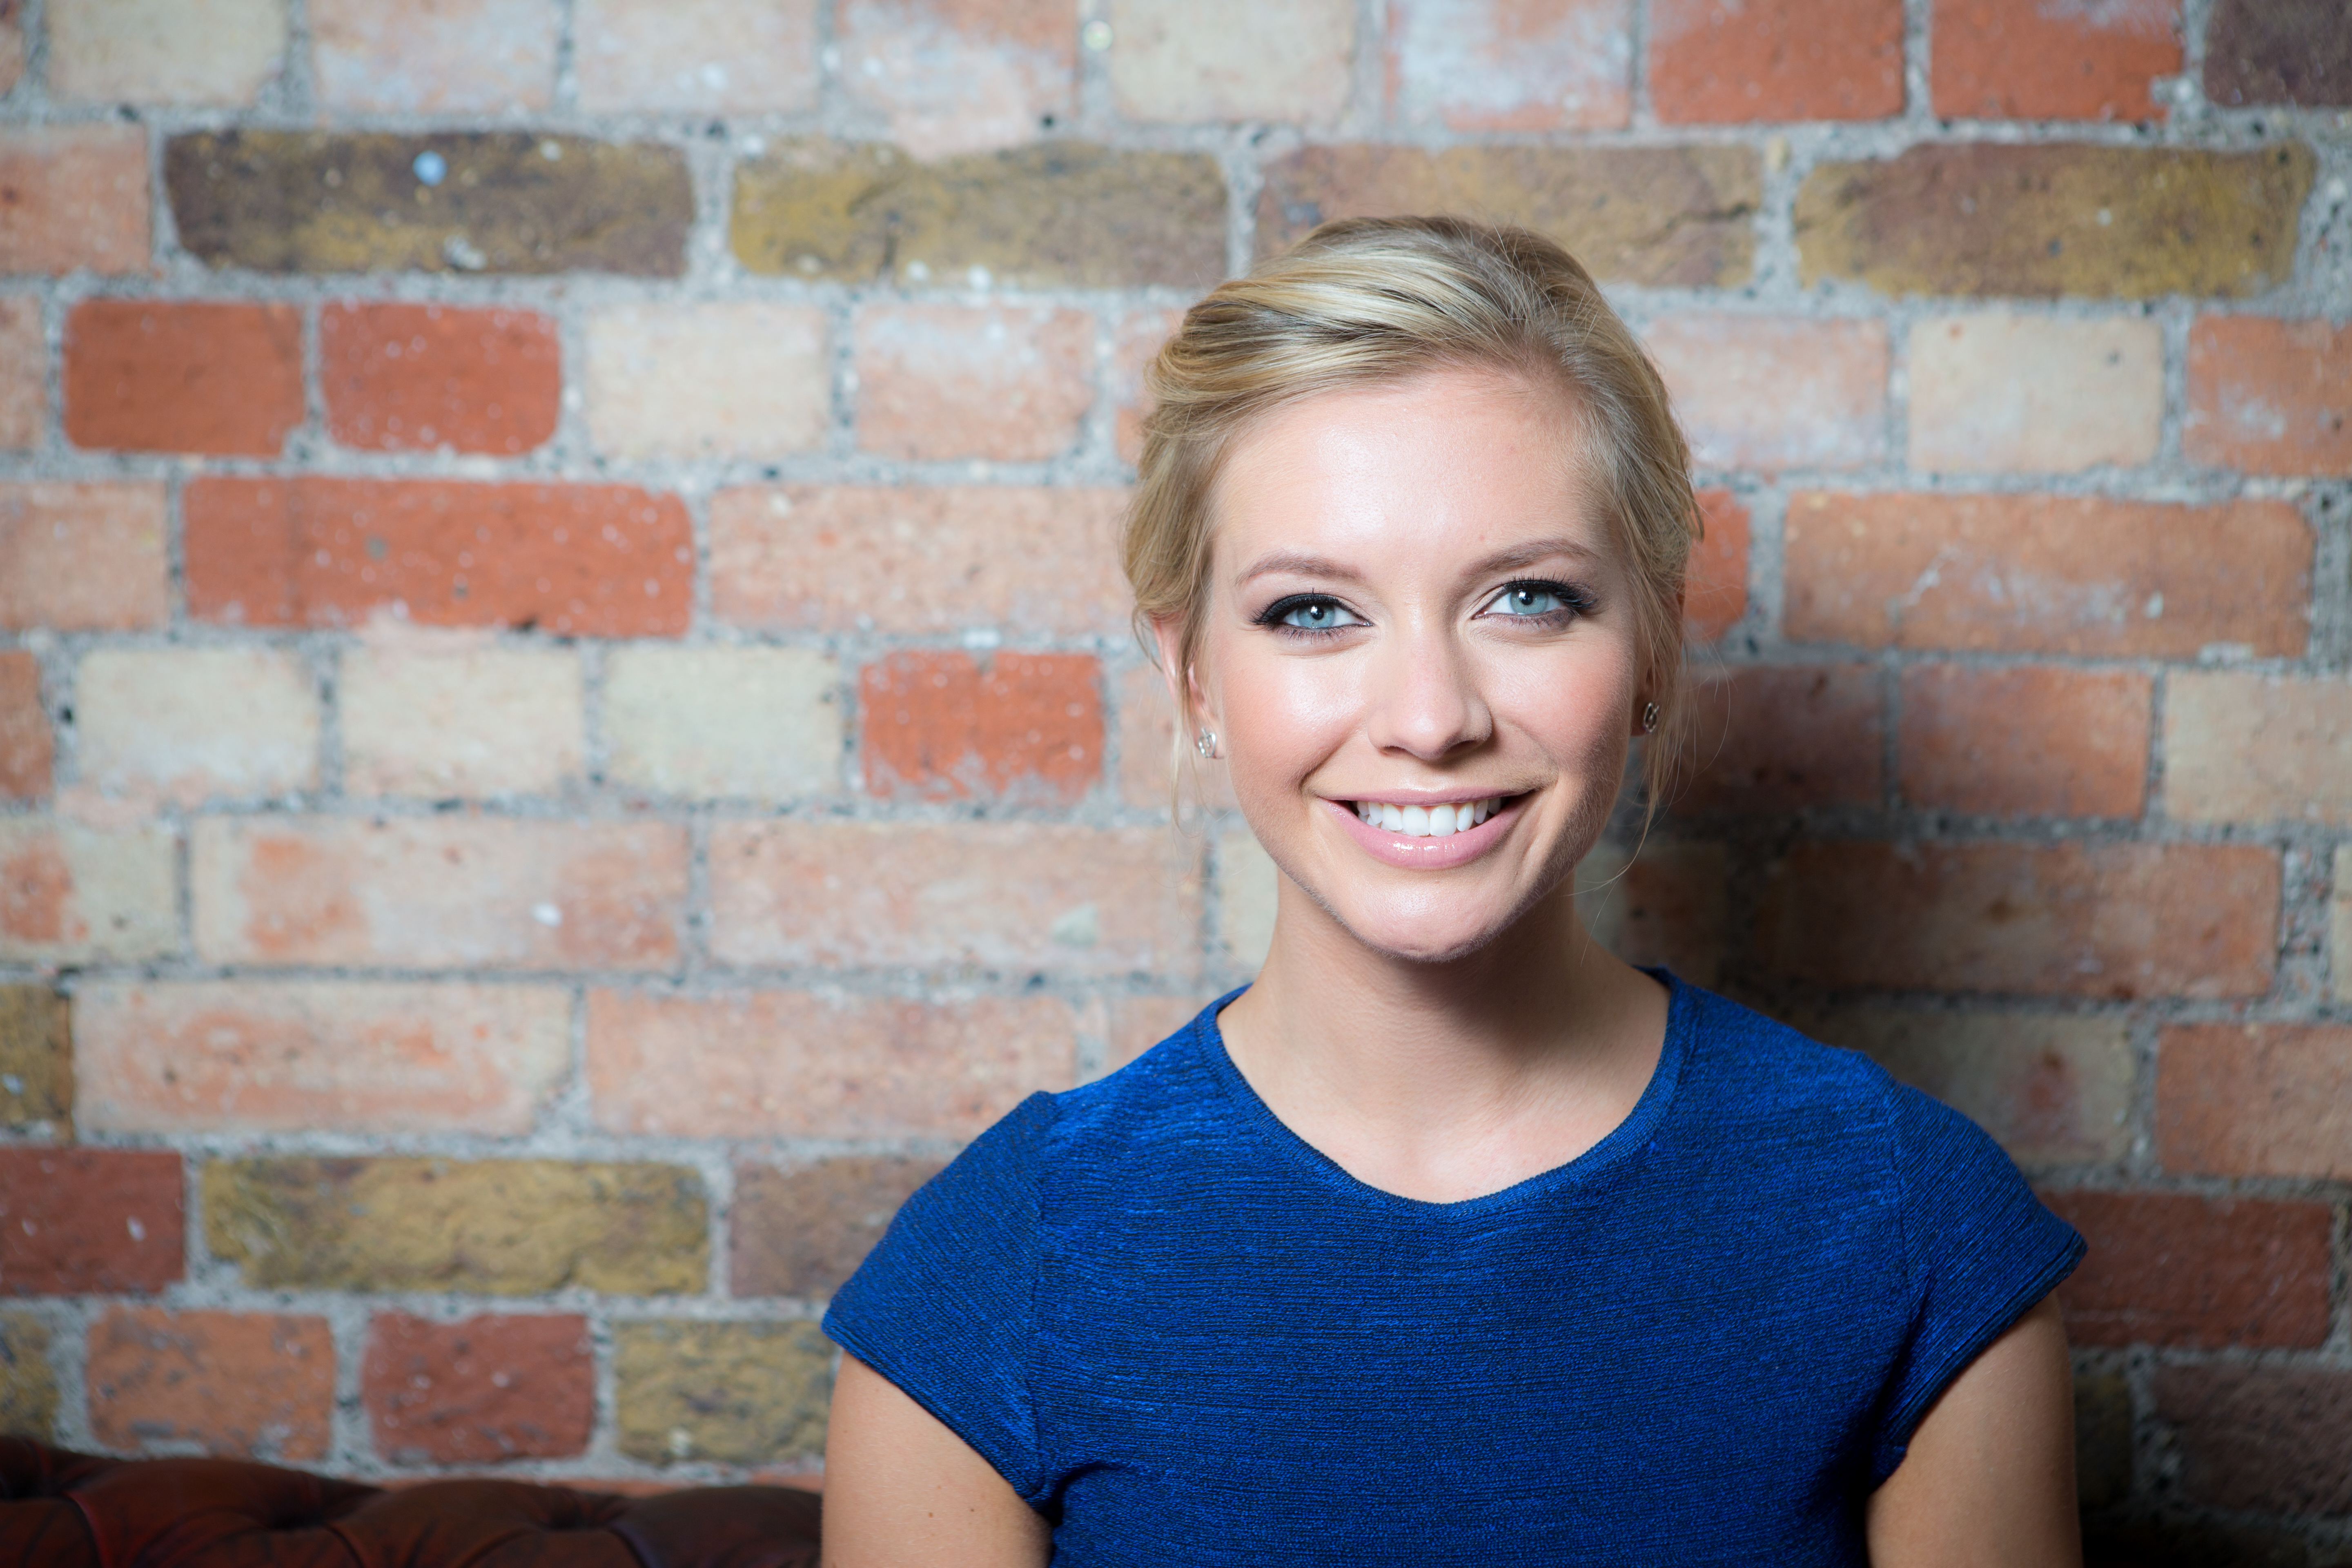 Rachel Riley - Courtesy of Verri Media